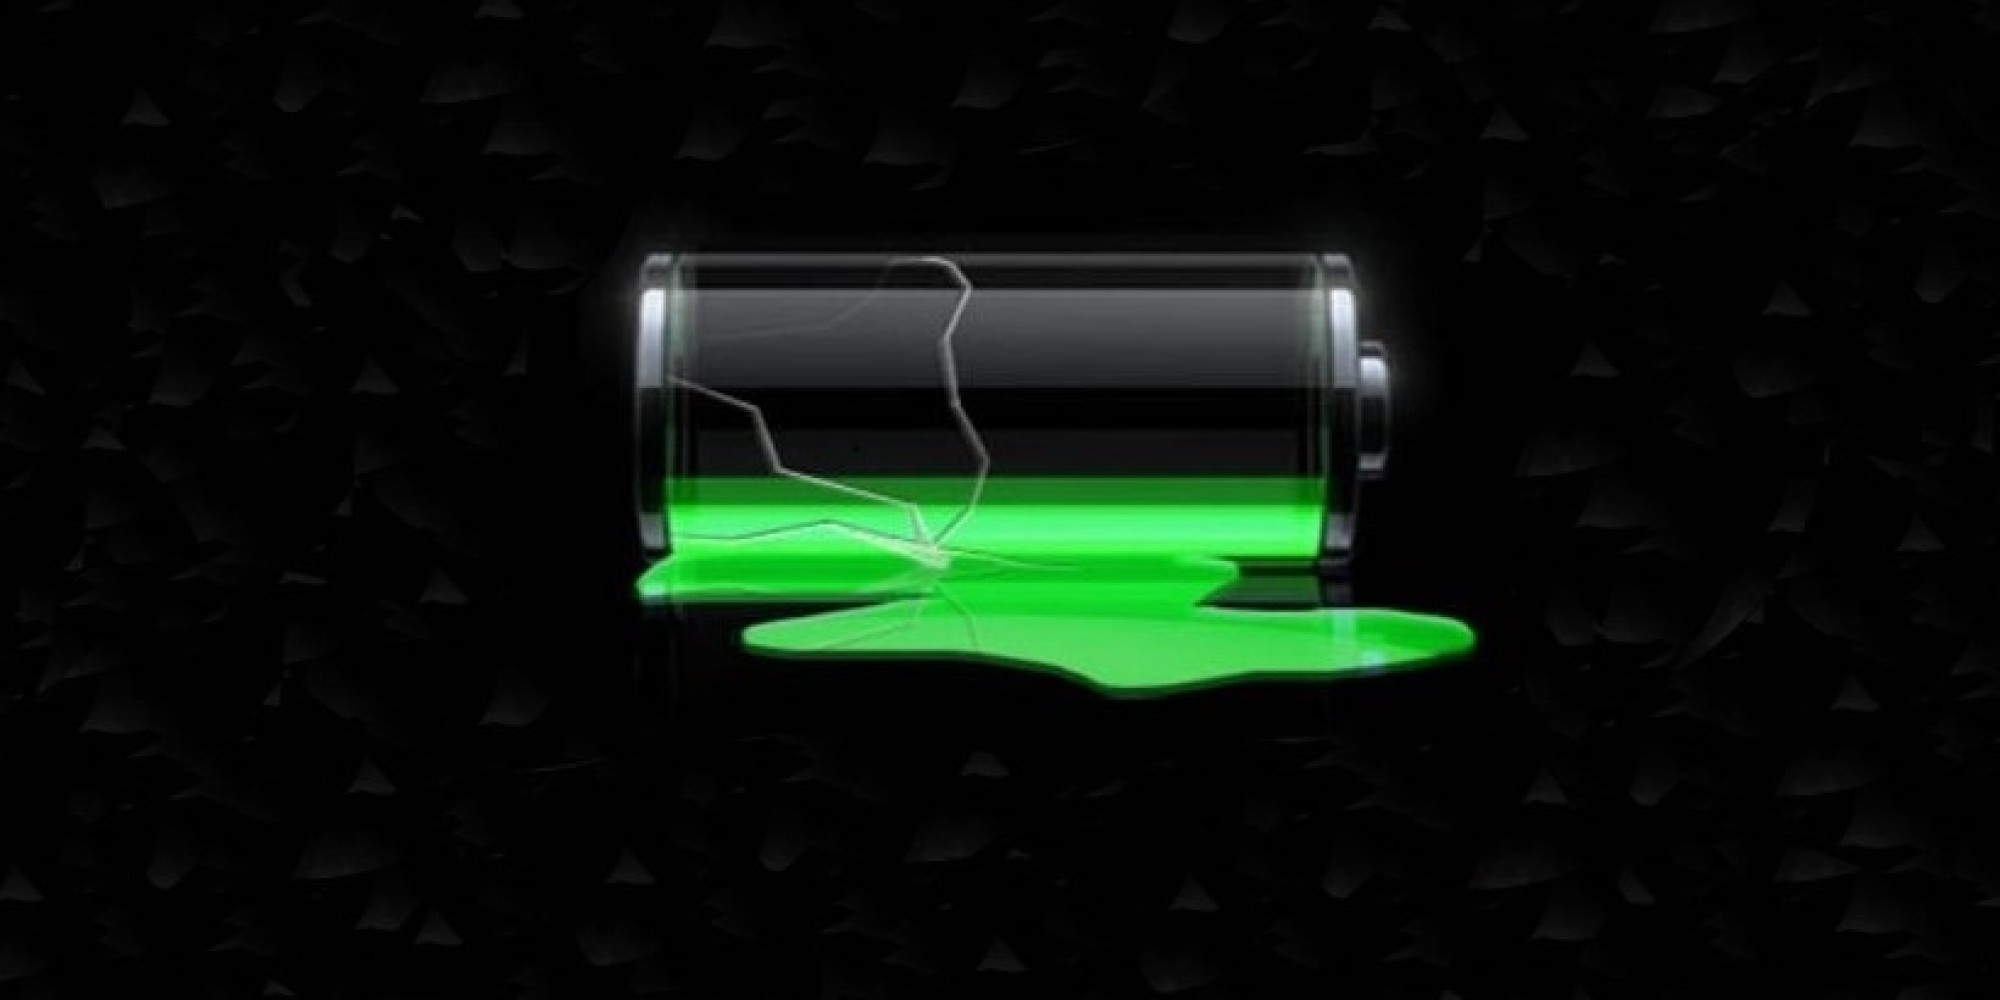 optimiser batterie iphone 4 s